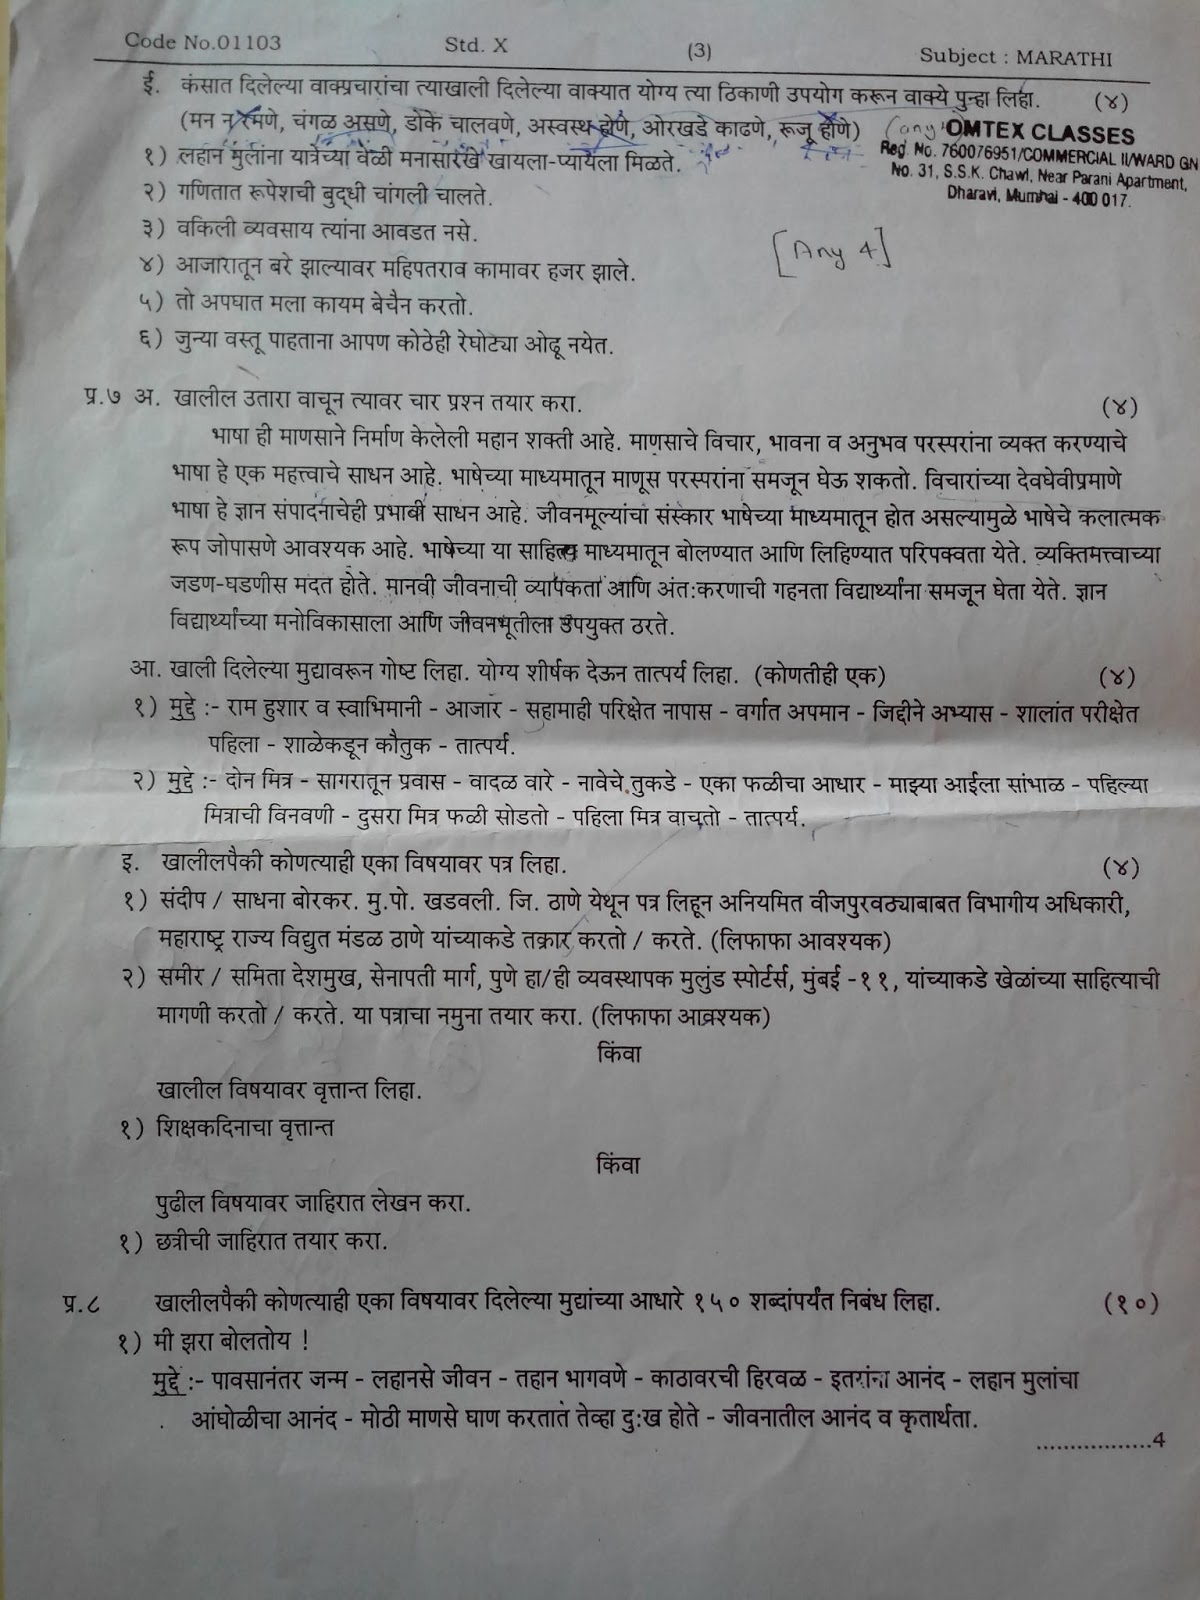 Omtex Classes Marathi Question Paper